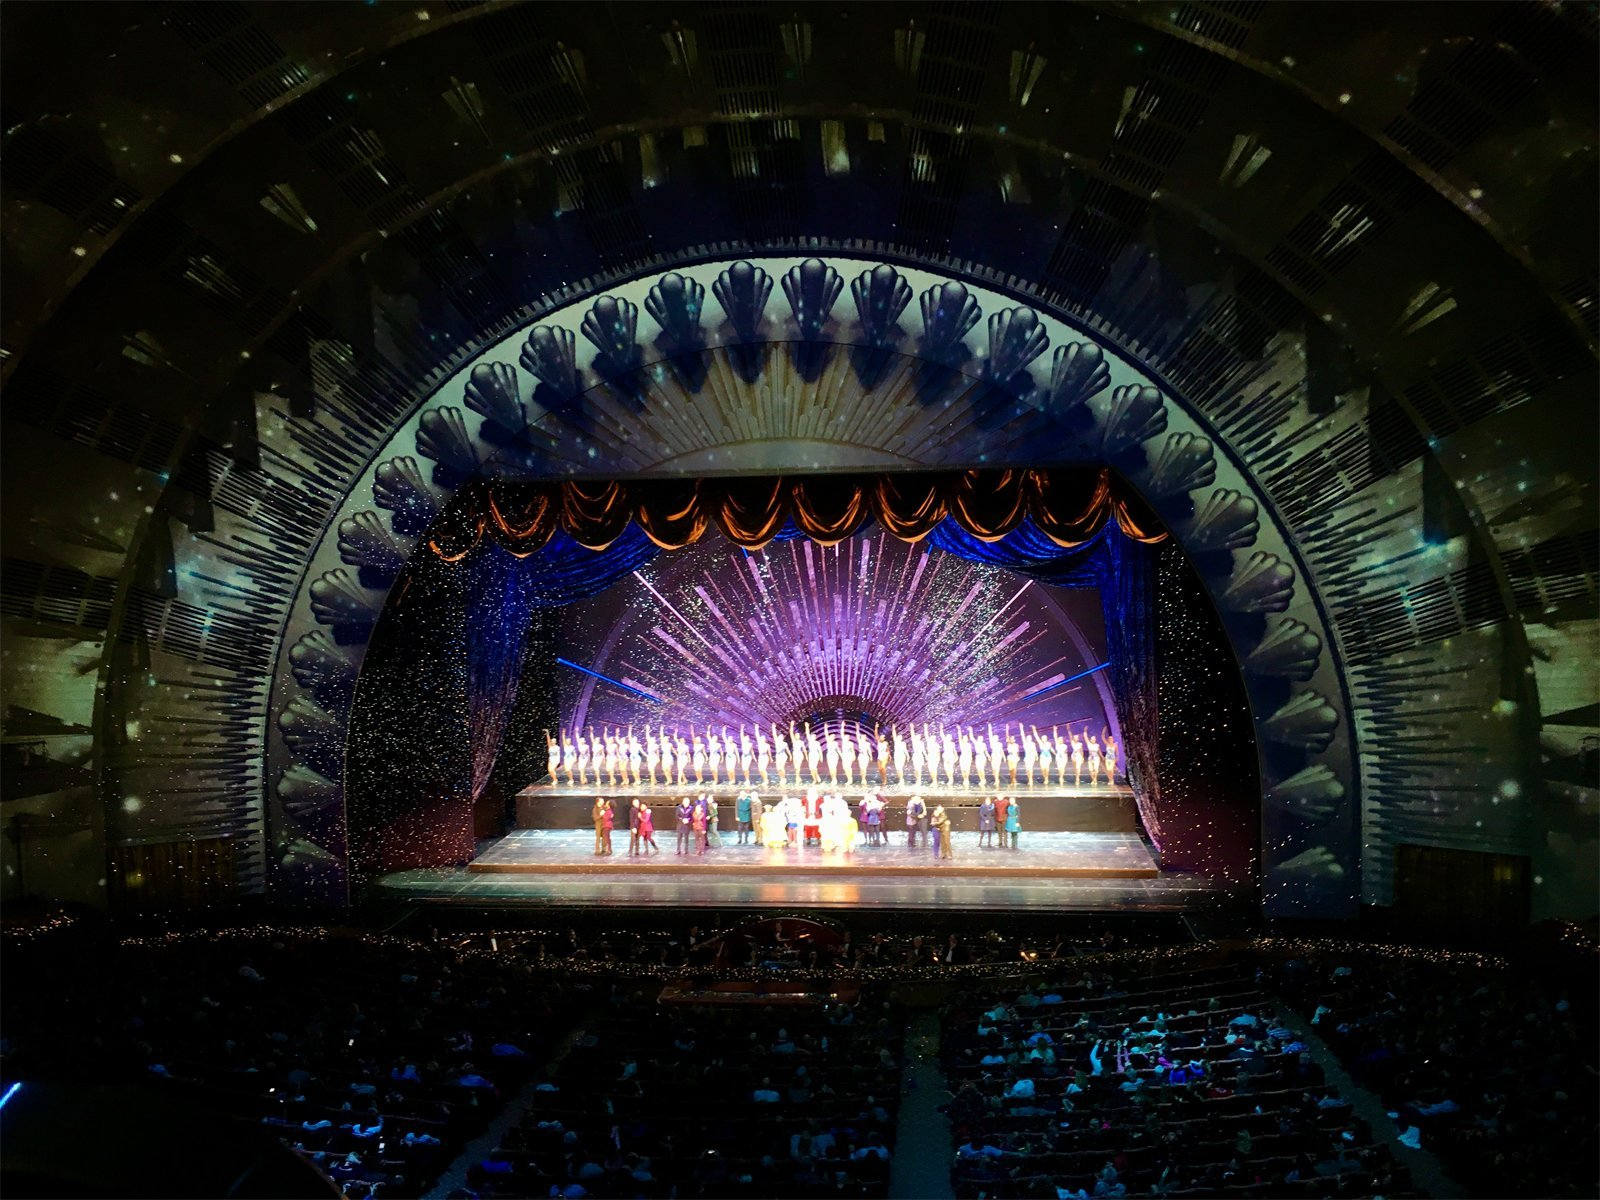 Rockettes Christmas Spectacular show at Rockefeller Center in New York City during the holidays